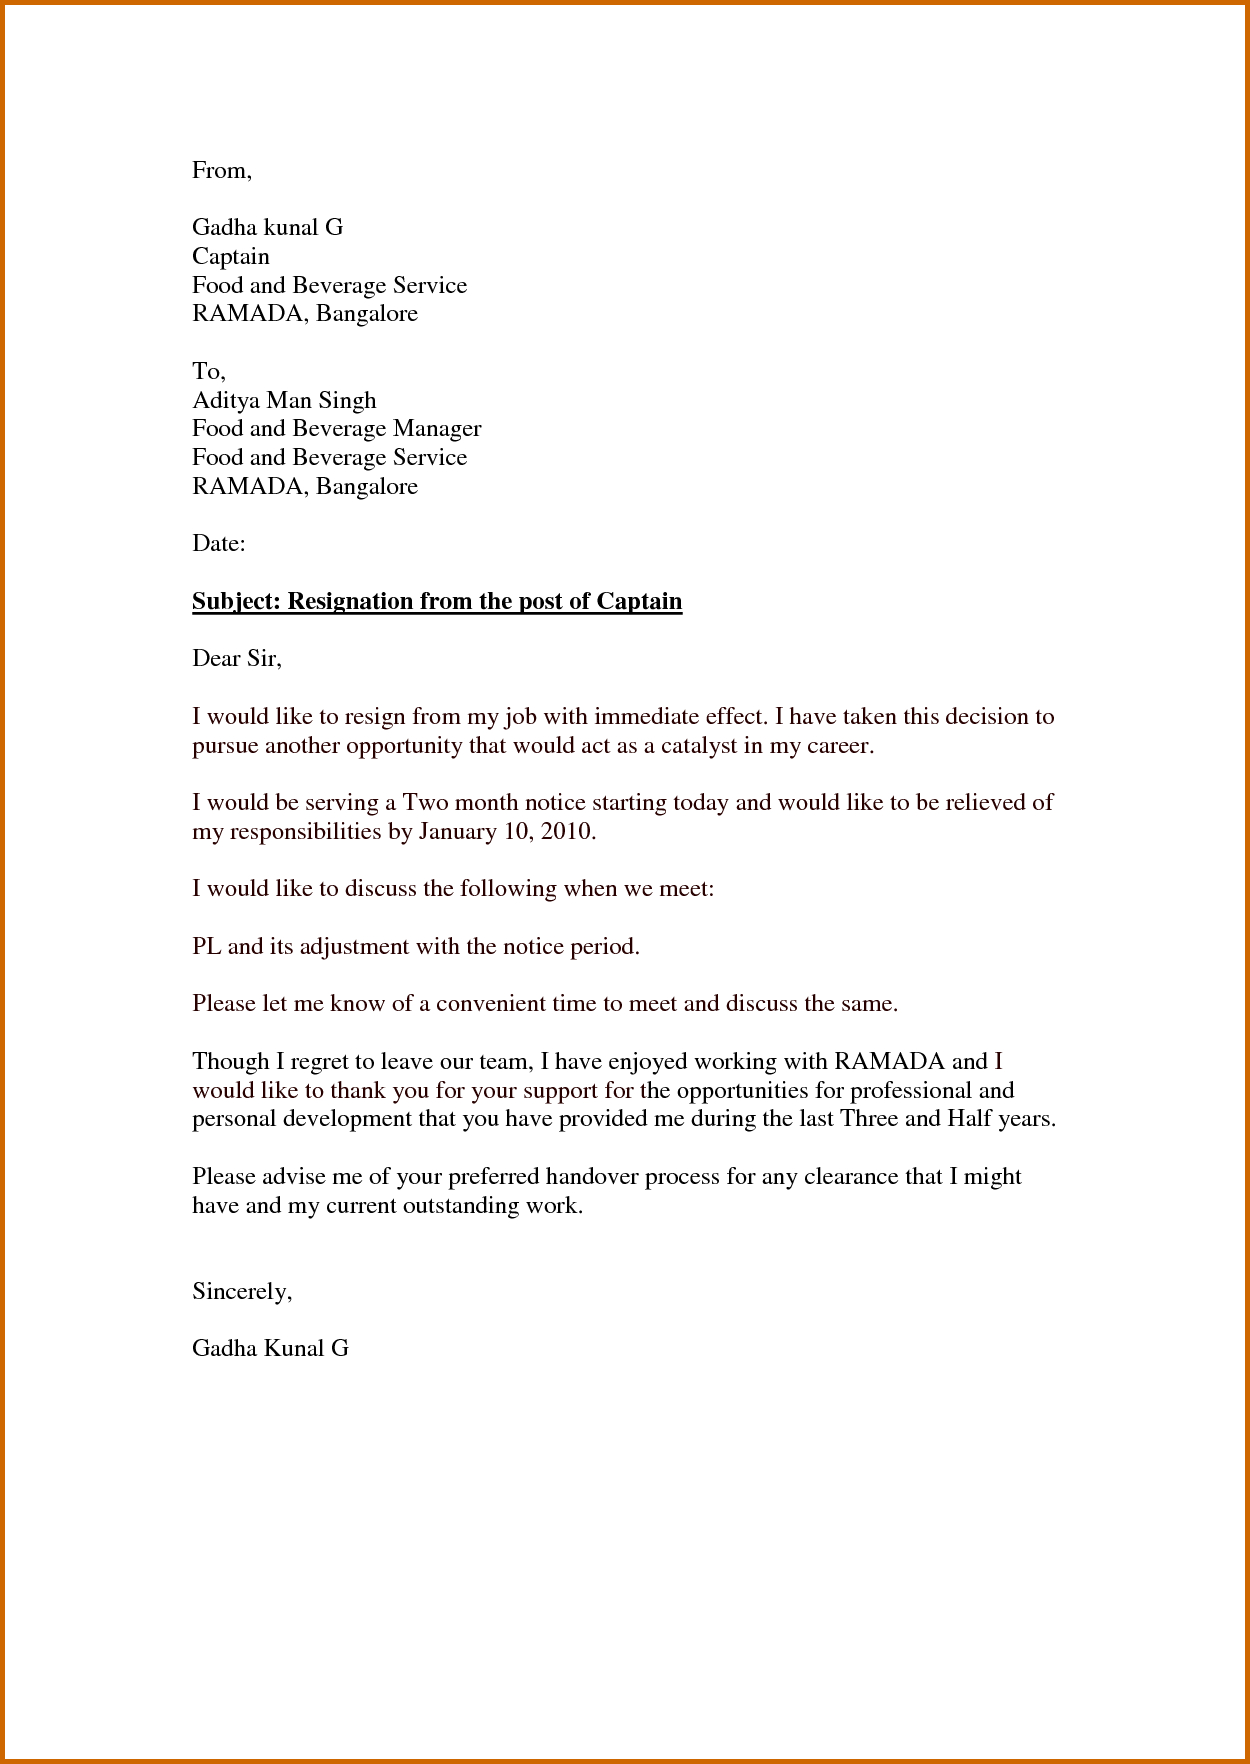 Immediate Resignation Letter Template - Simple Resignation Letters Samples Inspirational Letter Sample